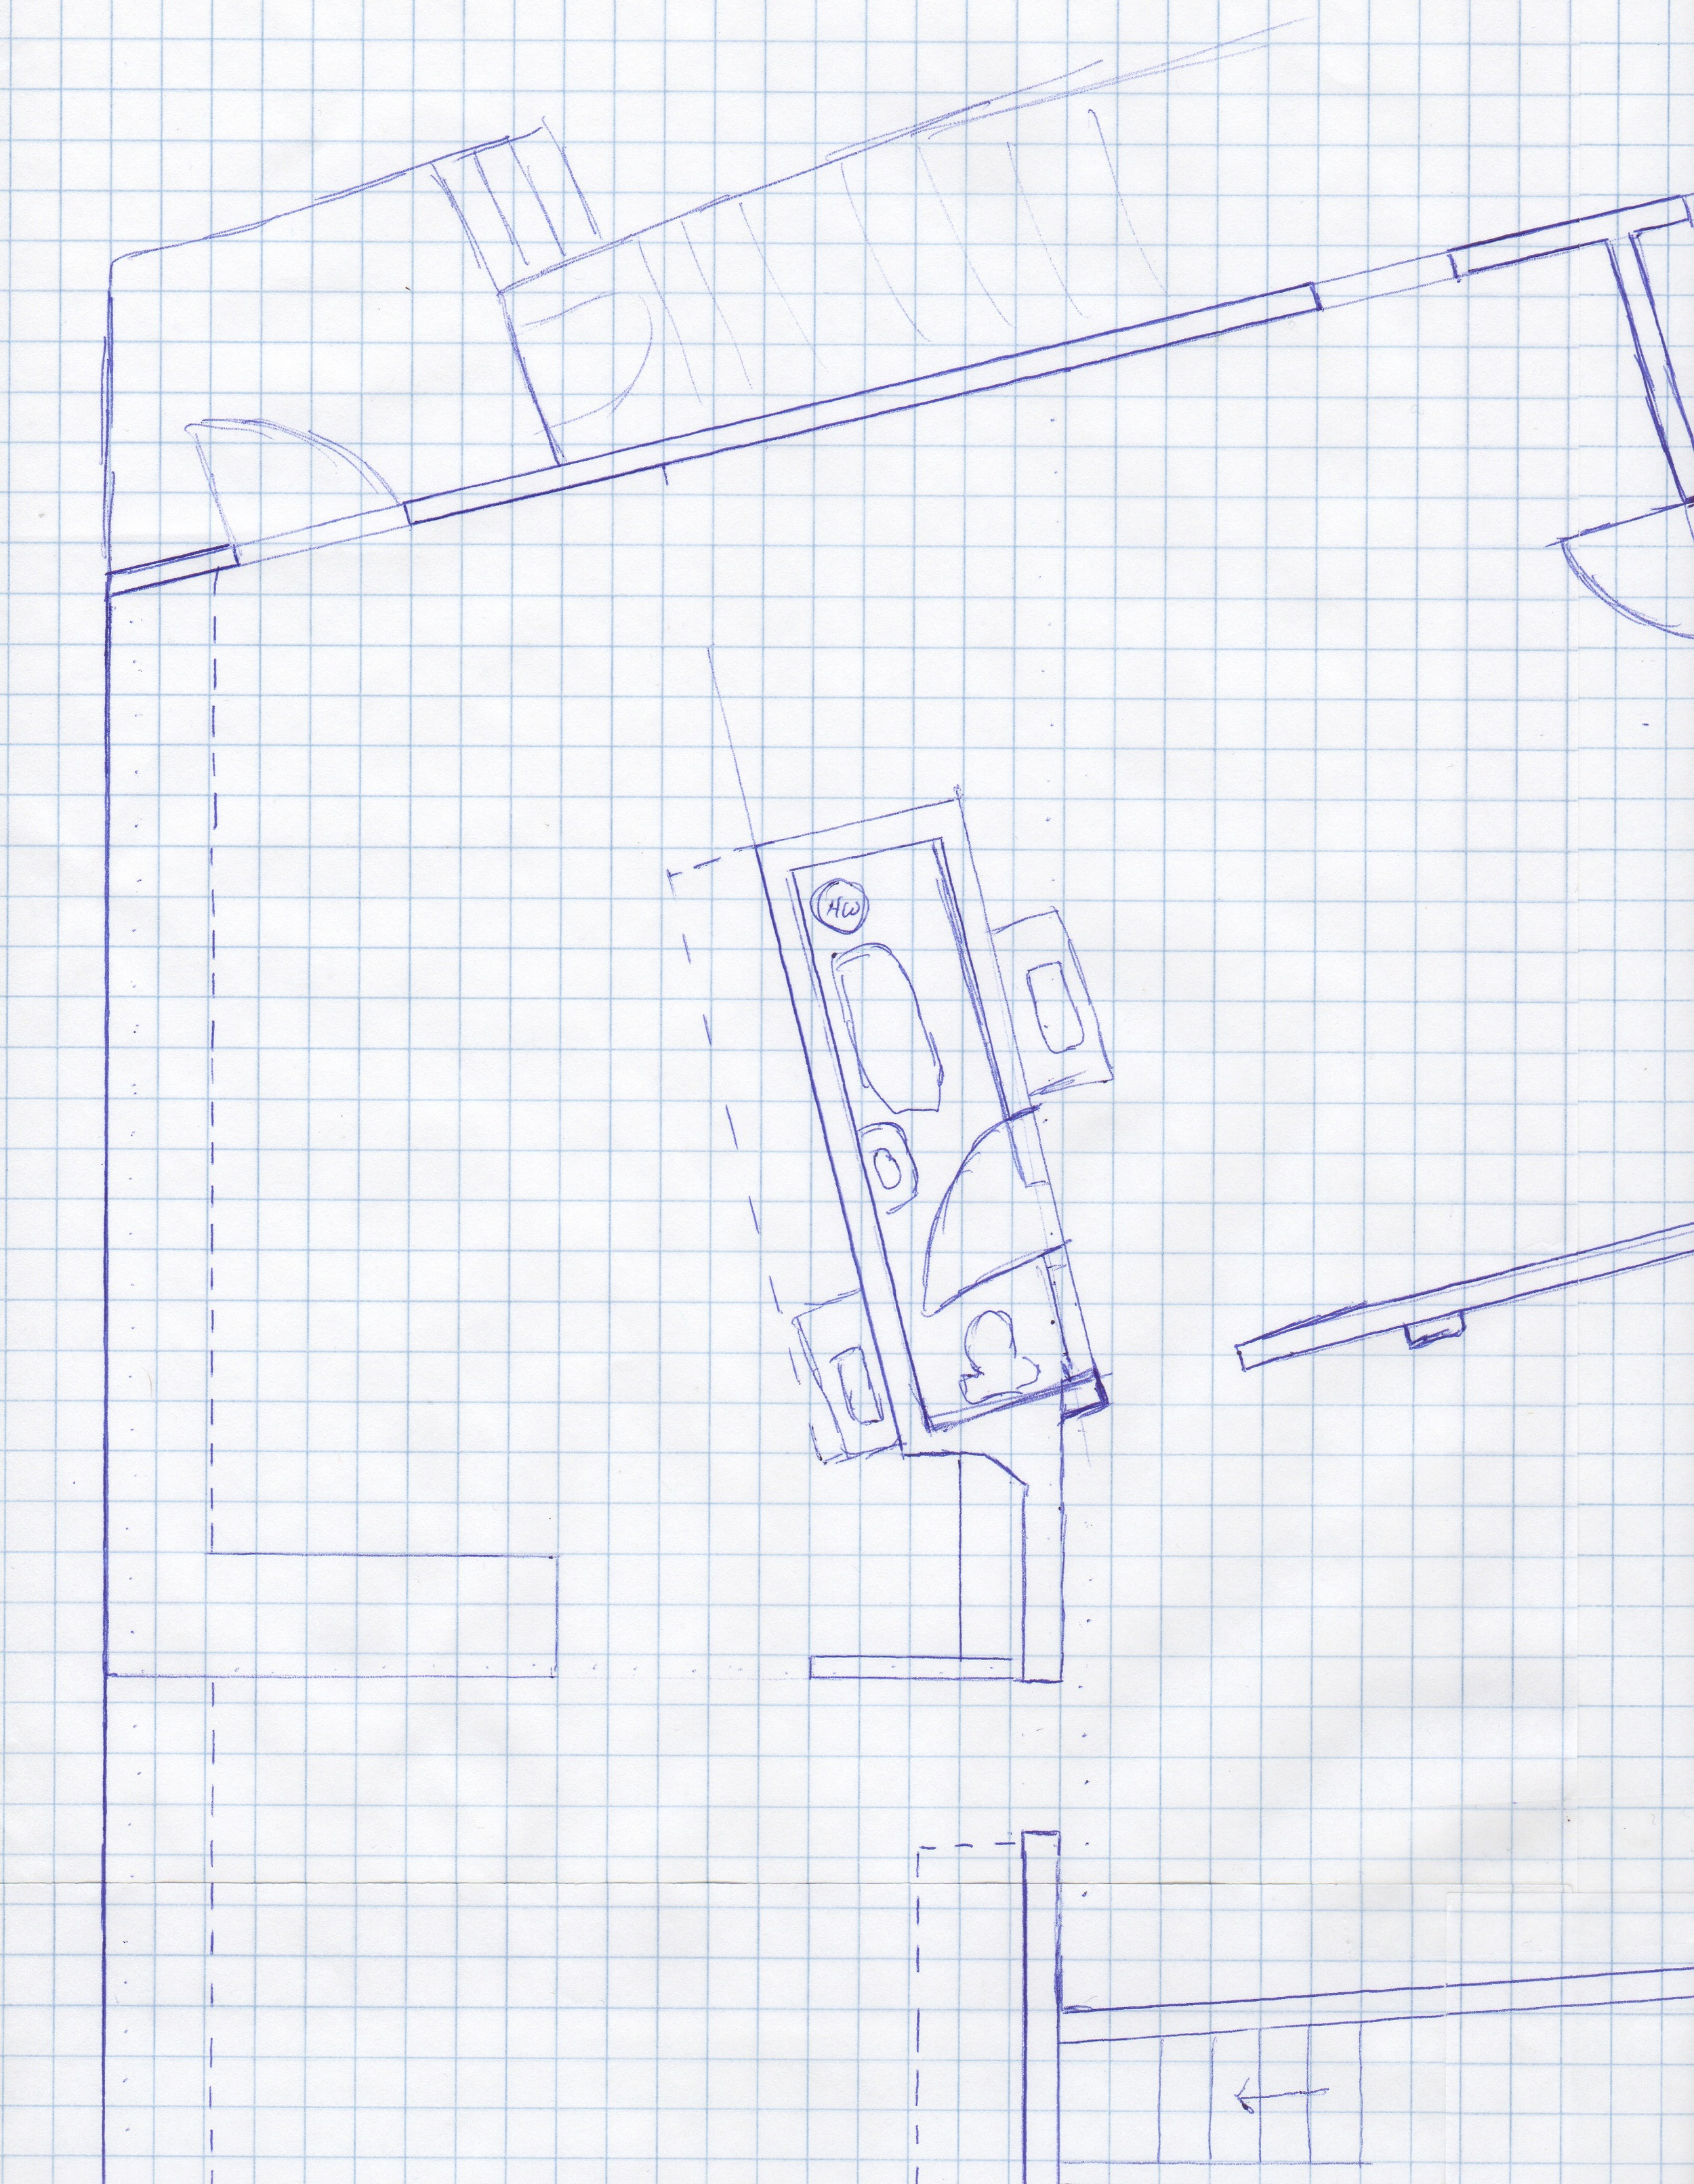 cafe layout drawing